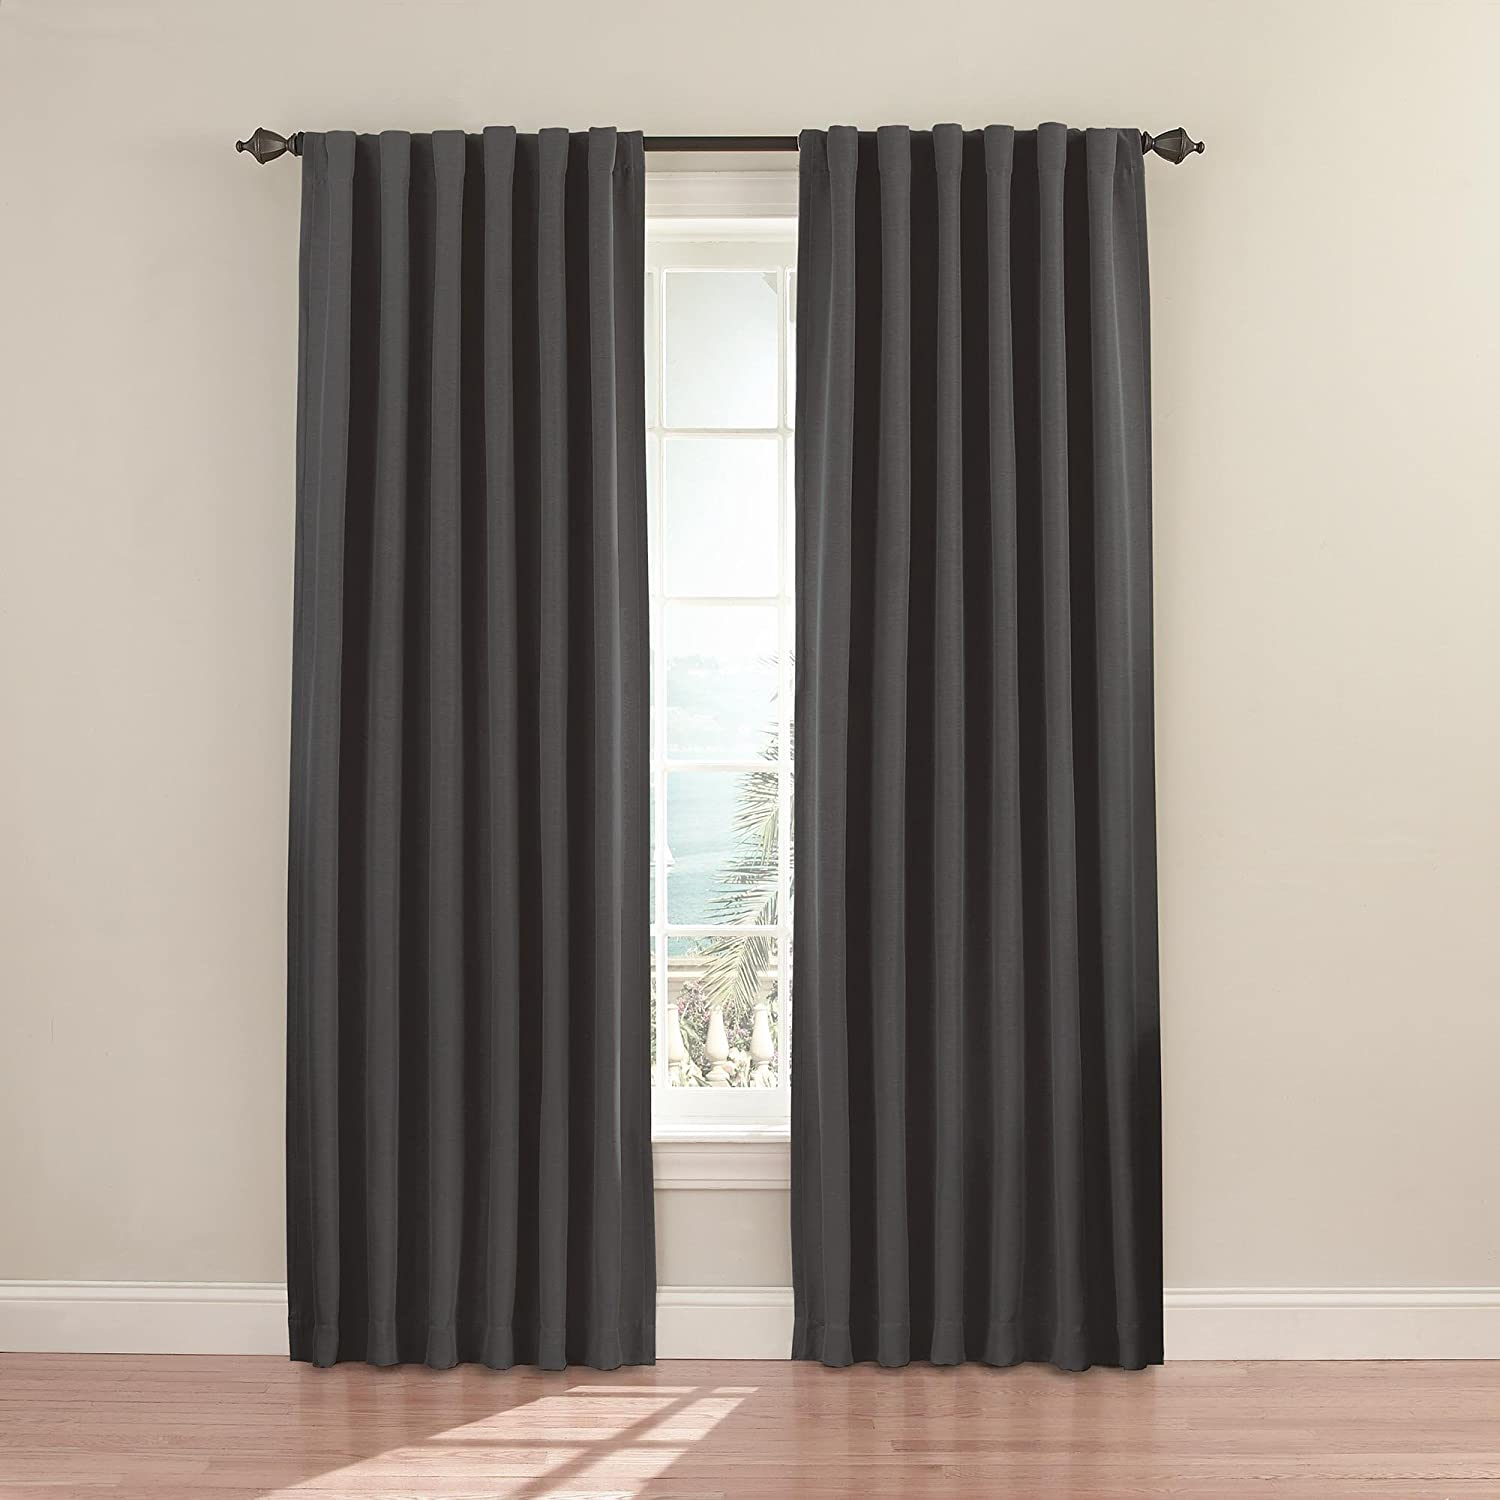 Eclipse Fresno Blackout Window Curtain Panel, 52 x 84-Inch, Charcoal